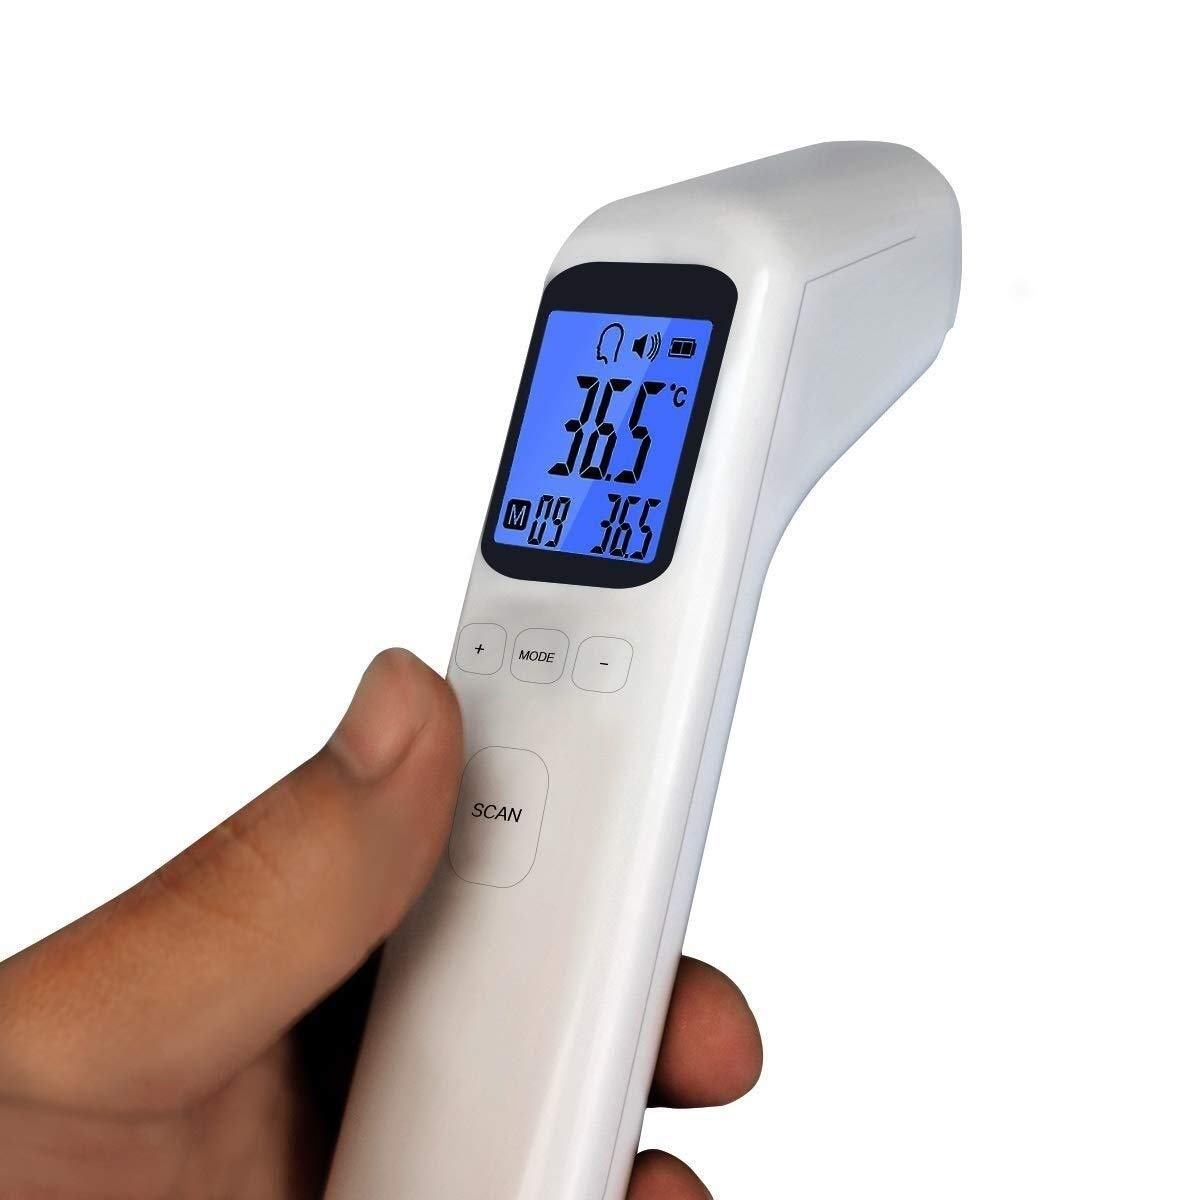 Thermometer Portable, Digital Medical, 10 Second Reading, Accurate Temperature and Humidity Detector, for Home Office